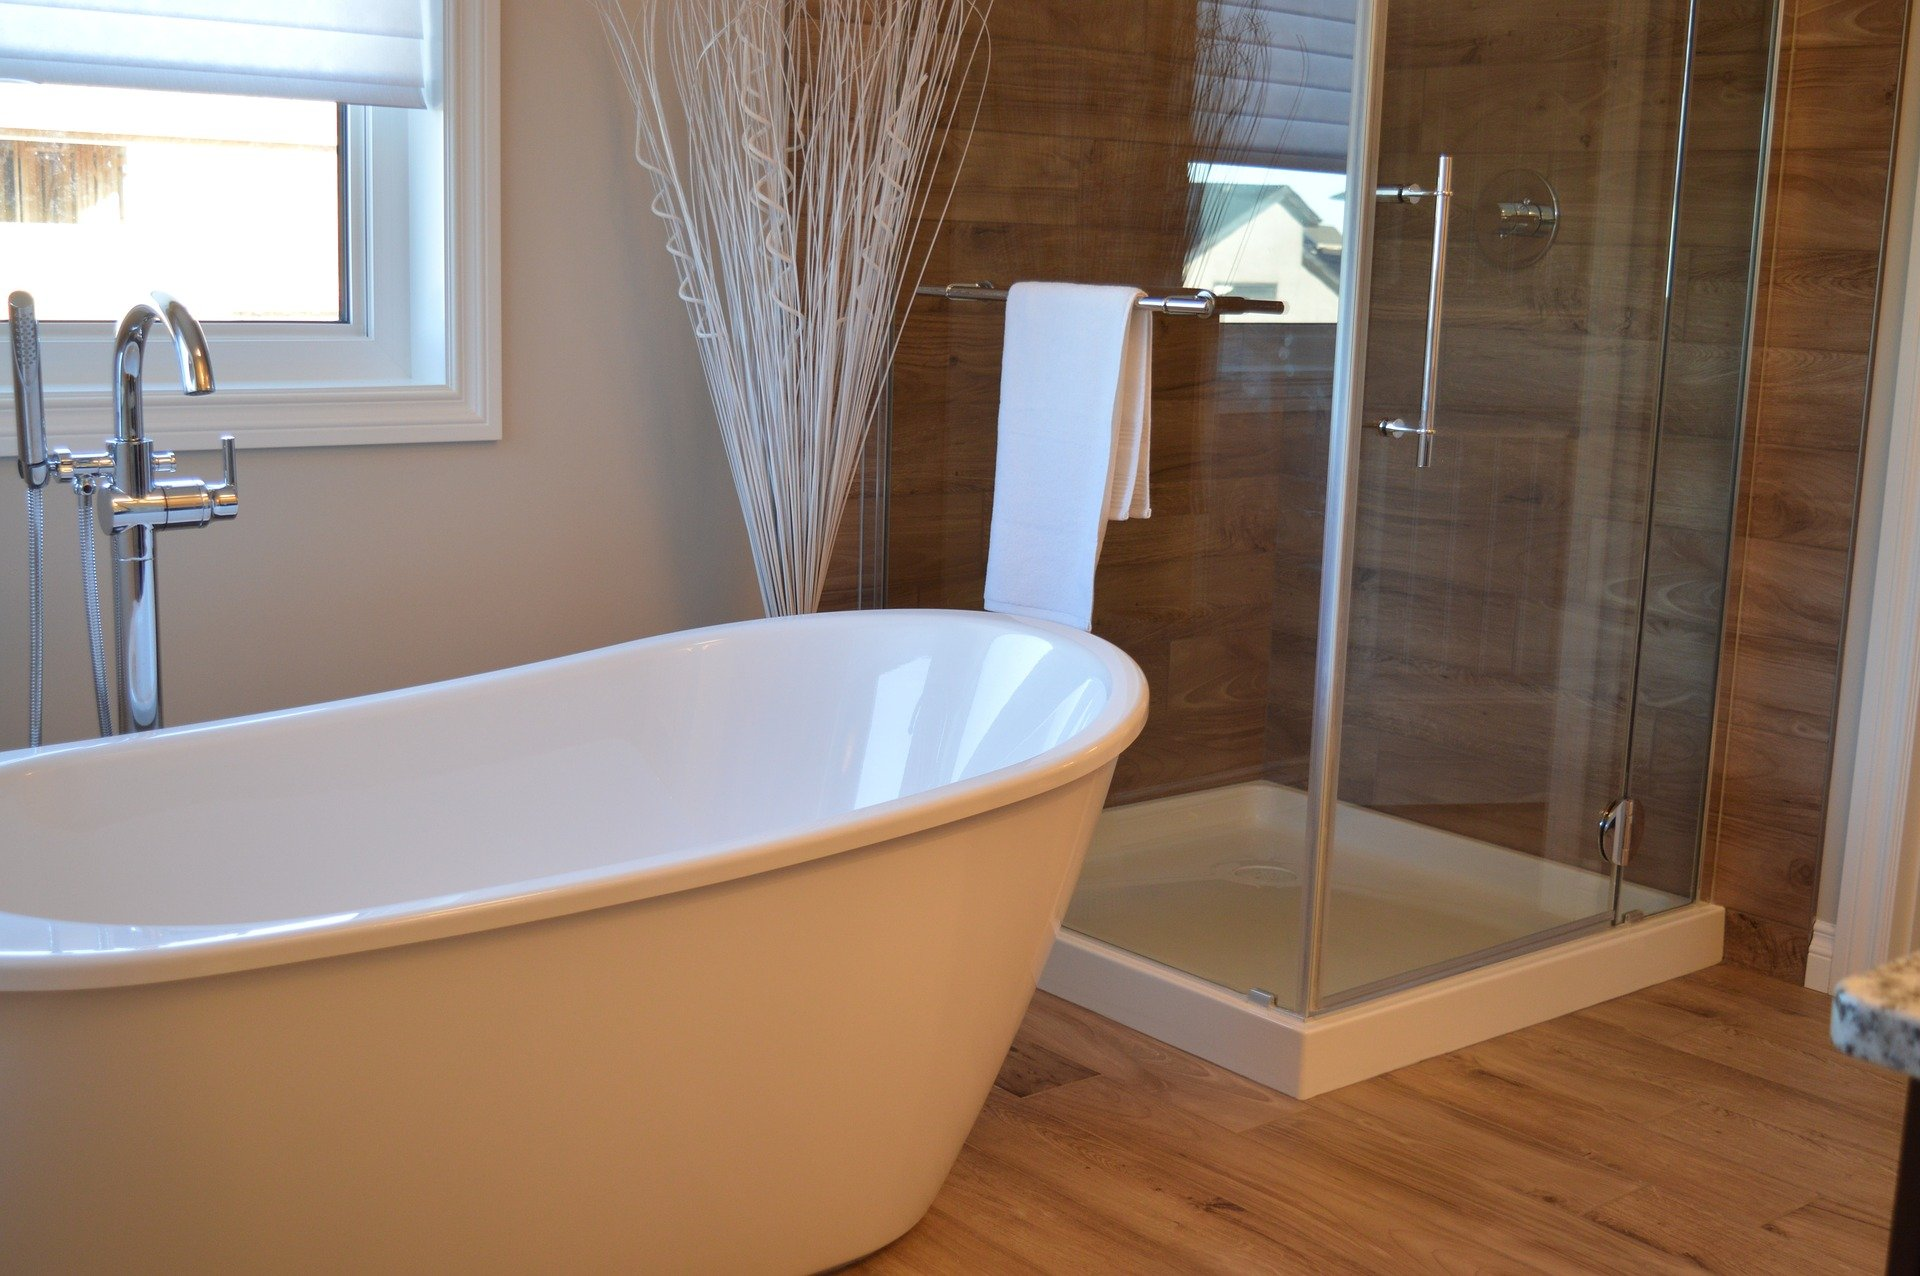 Bathroom Renovation and Bathroom Remodeling Contractor in Sugar Land, TX for your home